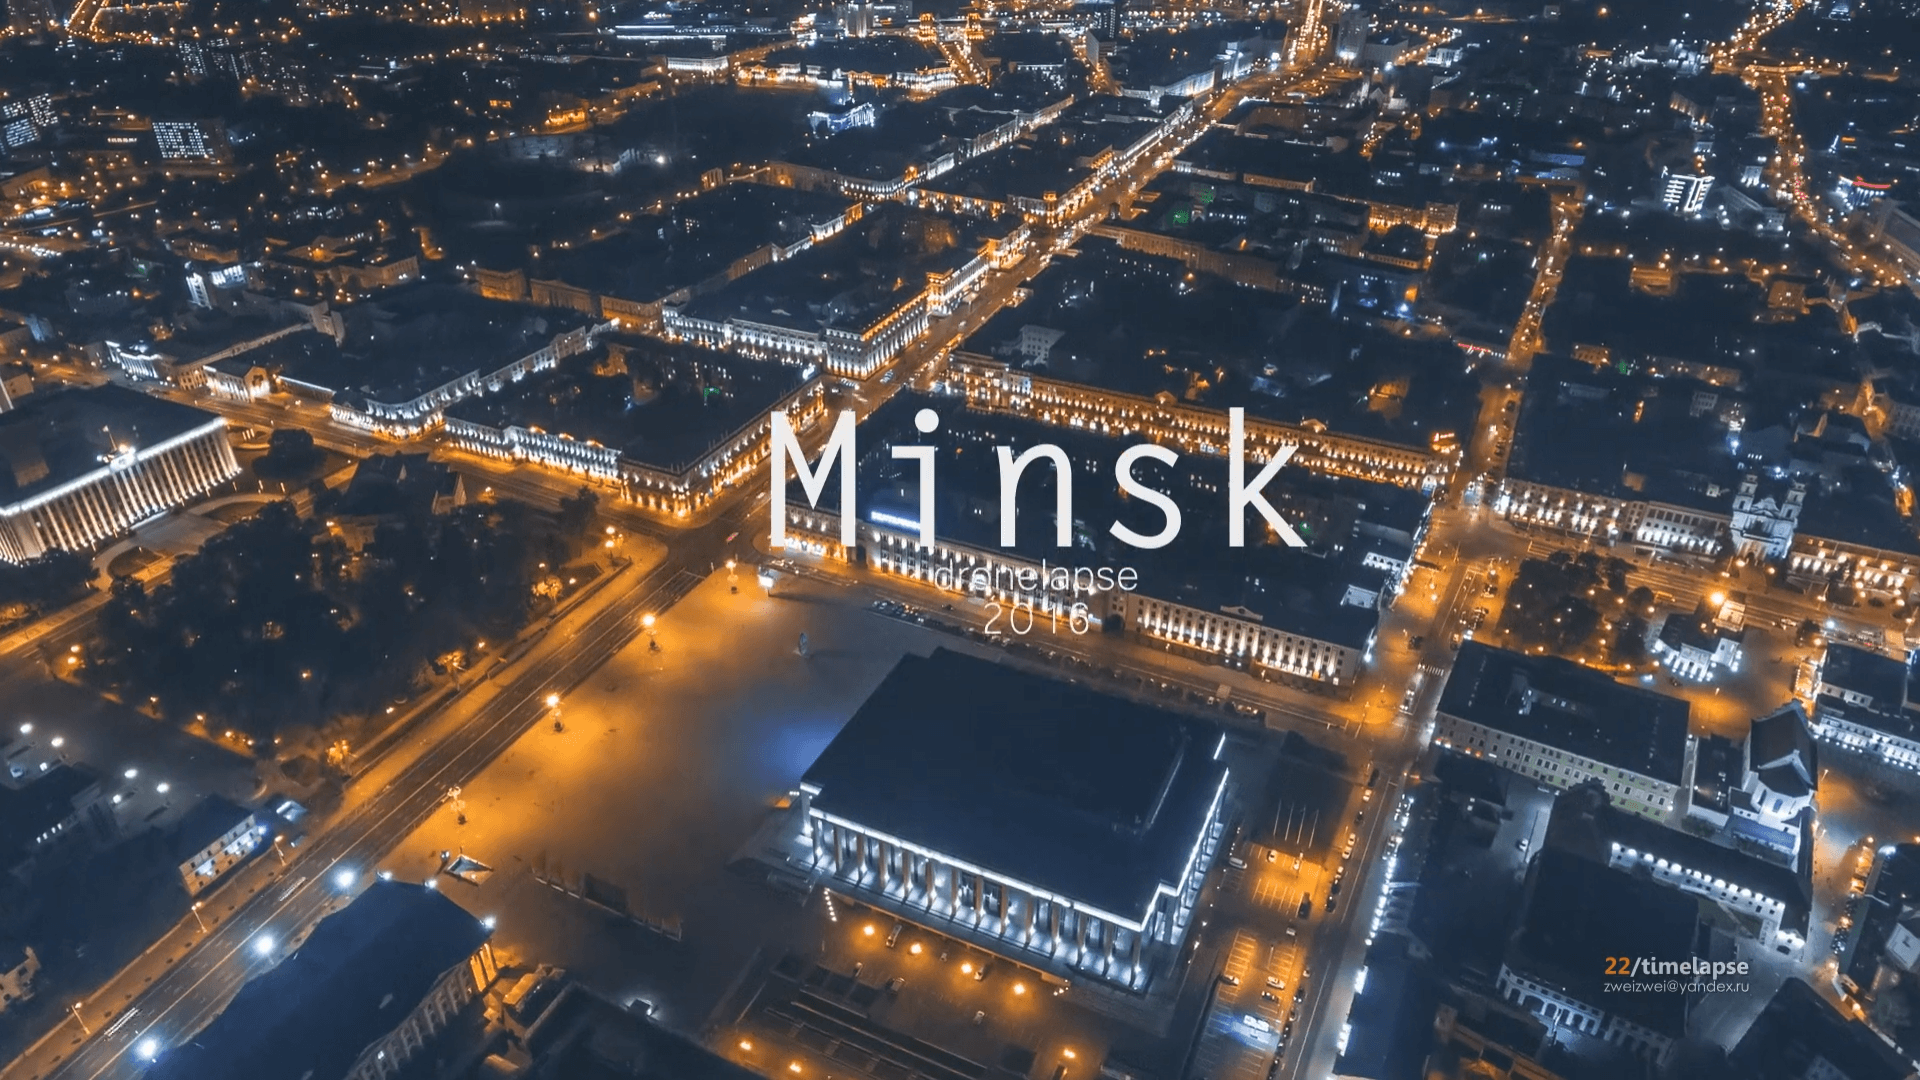 Dronelapse: this breathtaking timelapse of Minsk was made using a drone